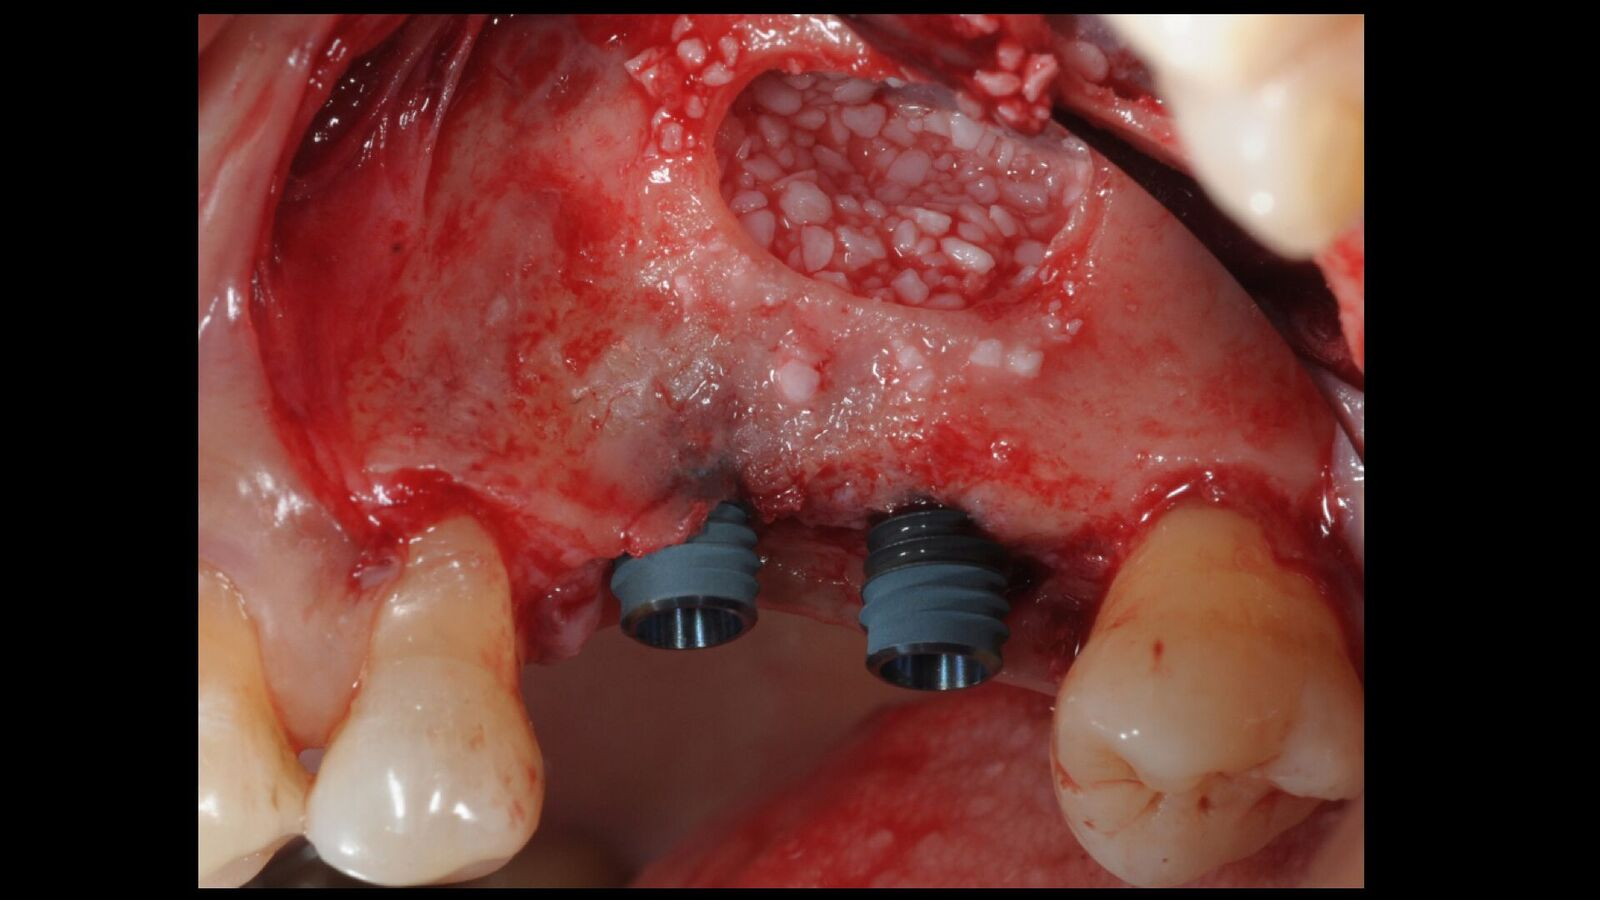 Sinus Floor Elevation And Implant Placement : Placement of anyridge implants with sinus floor